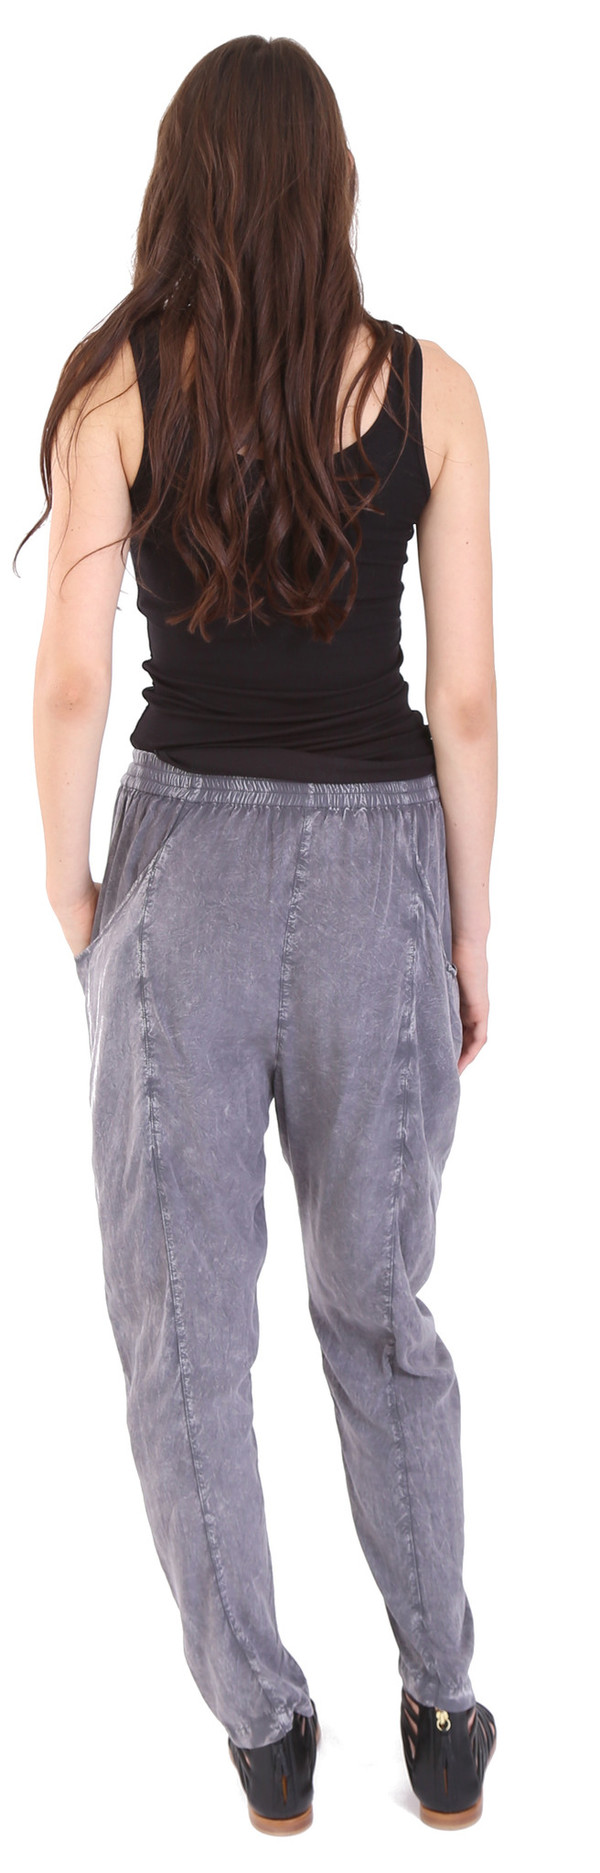 THE ODELLS Pull on Pant